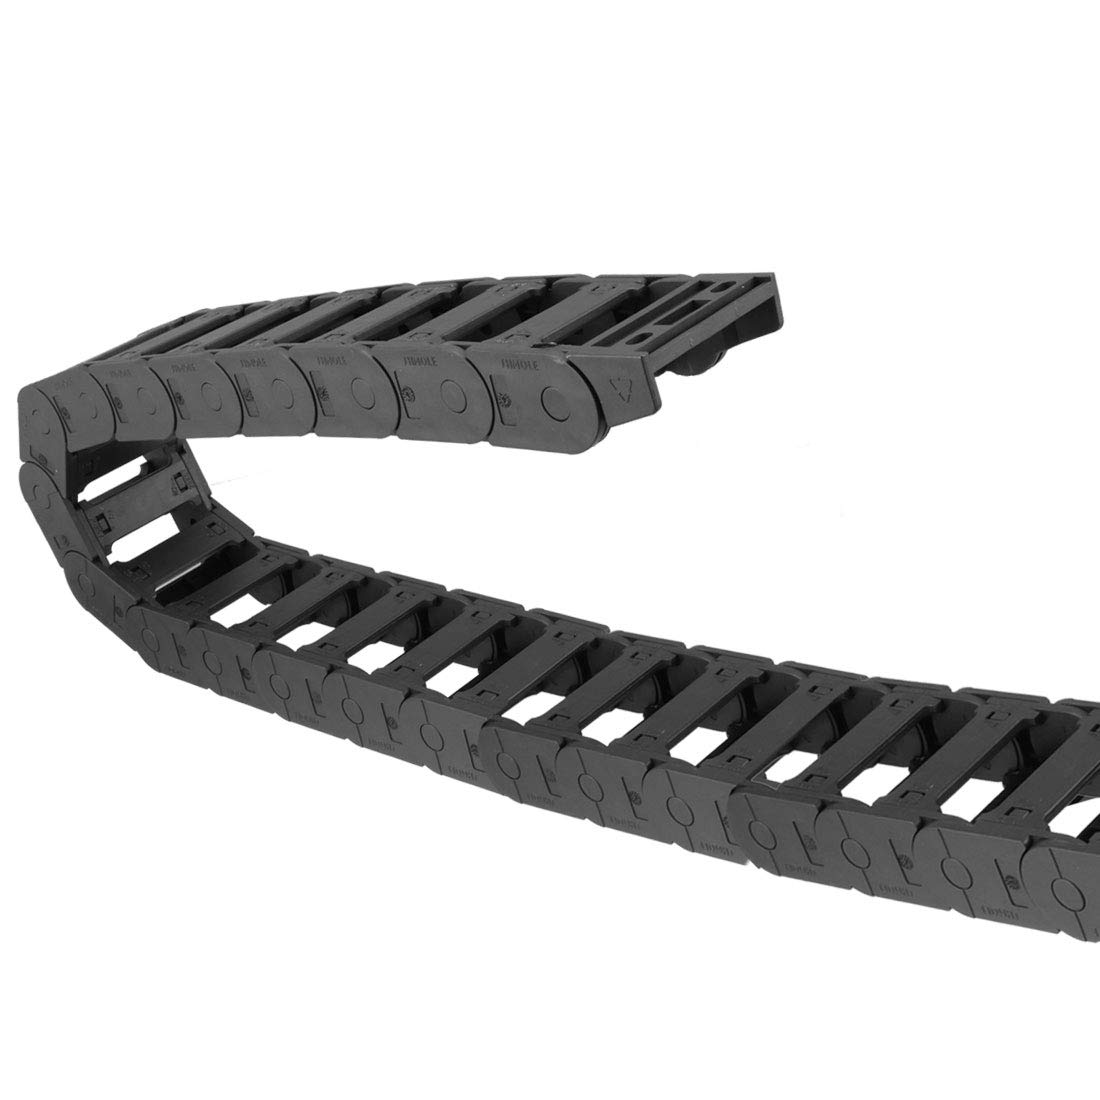 uxcell Drag Chain Cable Carrier Open Type with End Connectors R55 30X77mm 1 Meter Plastic for Electrical CNC Router Machines Black